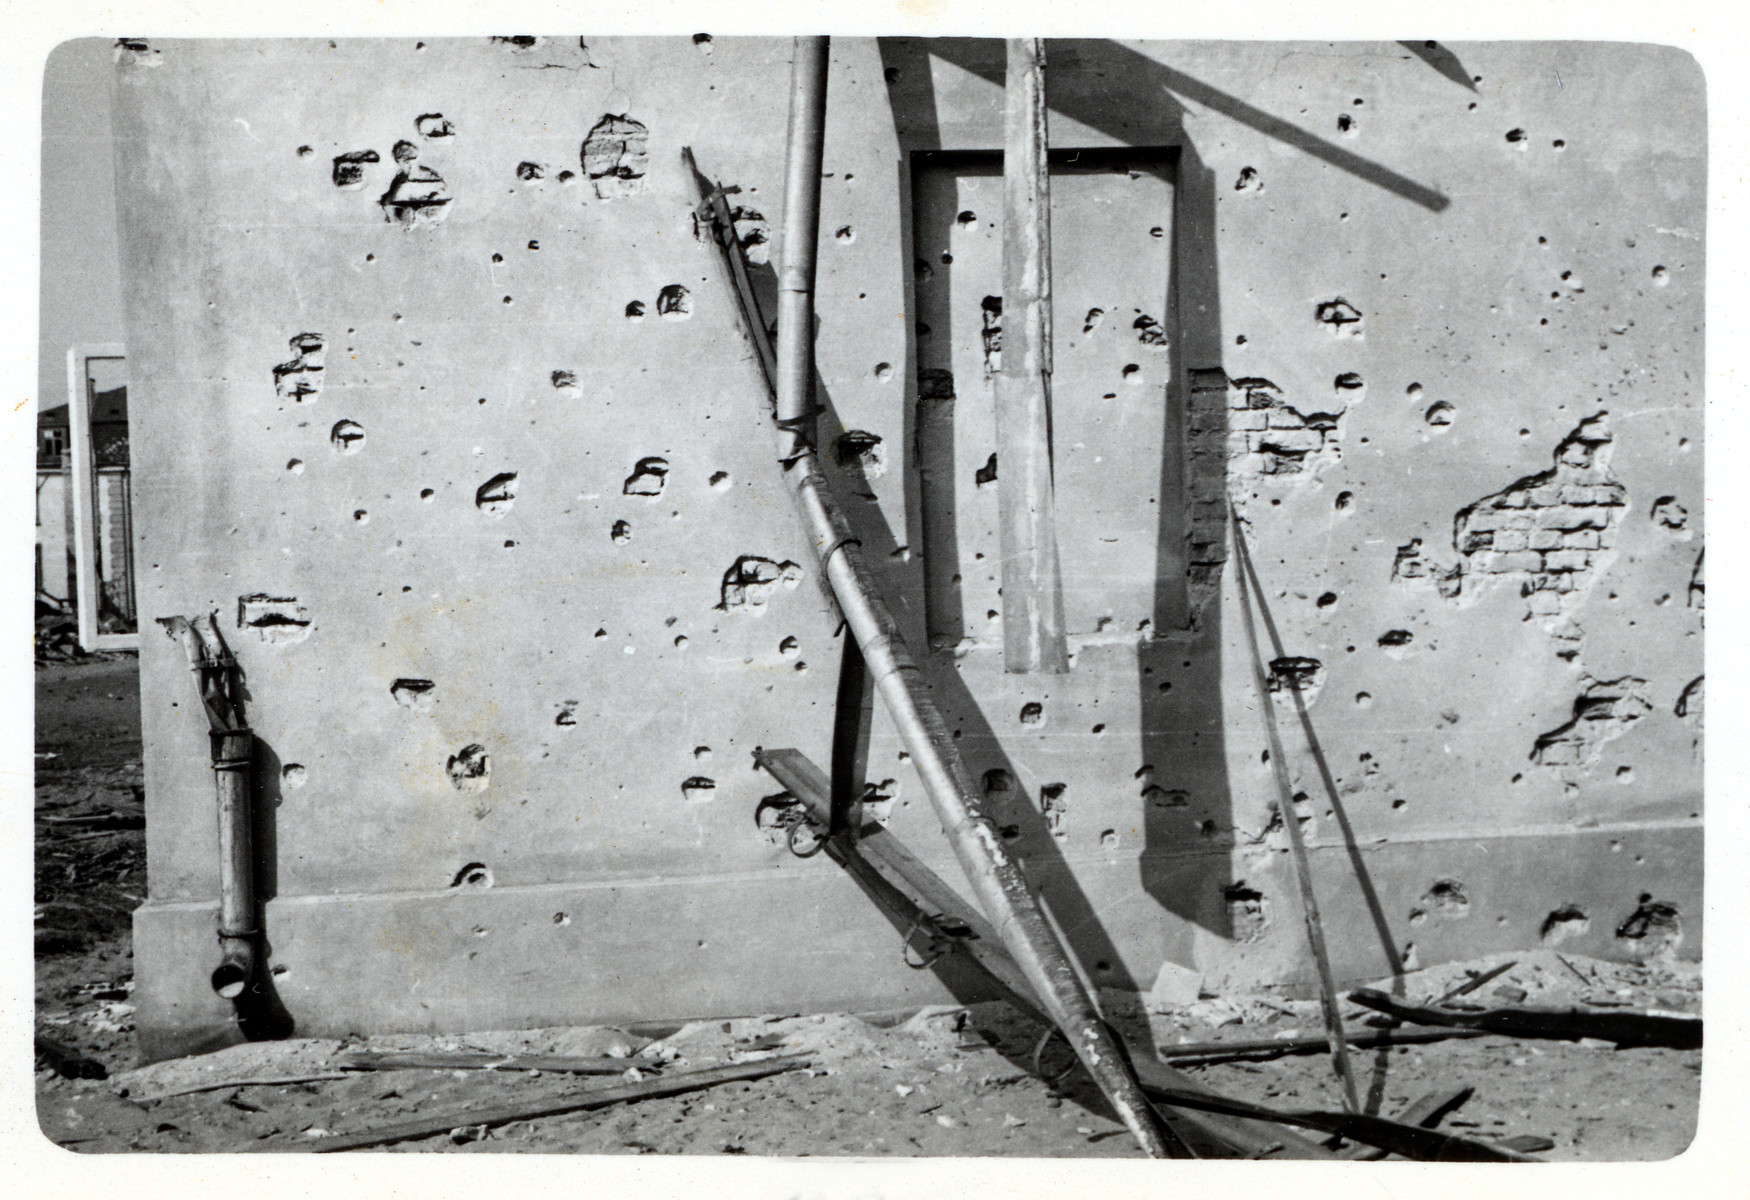 View of a  plaster wall in besieged Warsaw that has been riddled by machine gun fire.